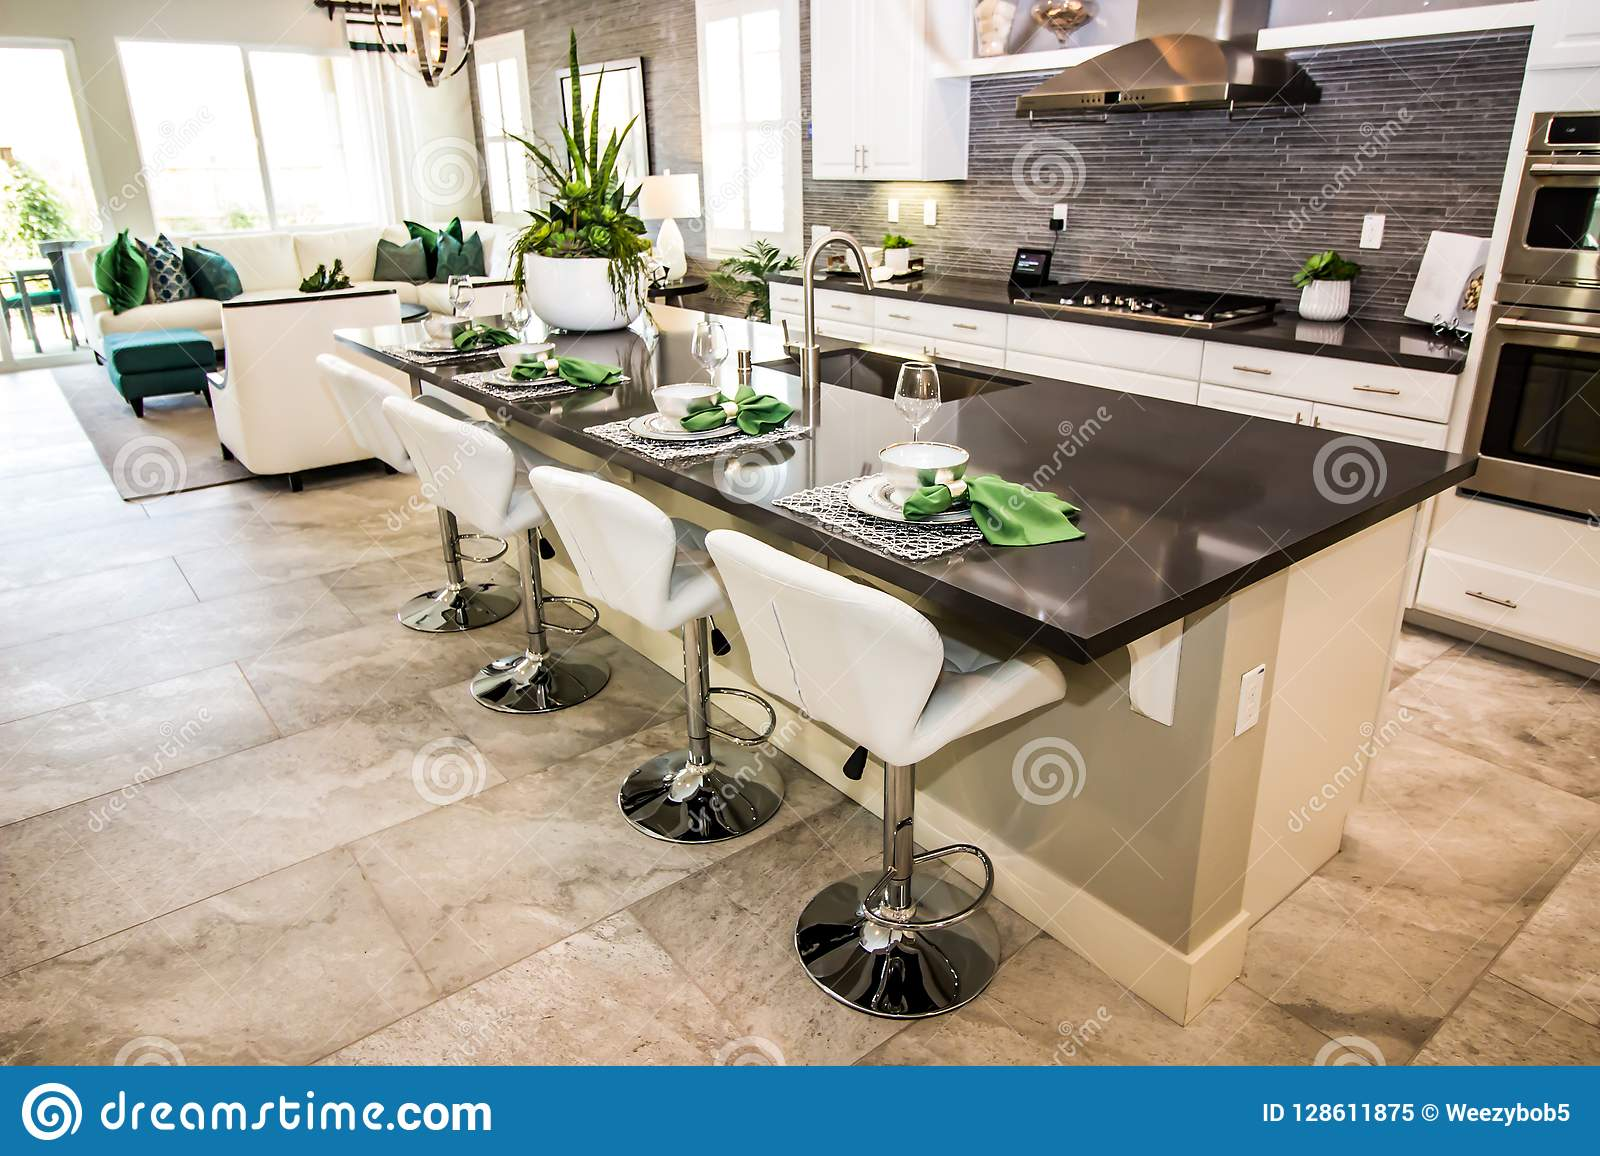 Modern Kitchen With Counter Bar & Stools Stock Image - Image ...